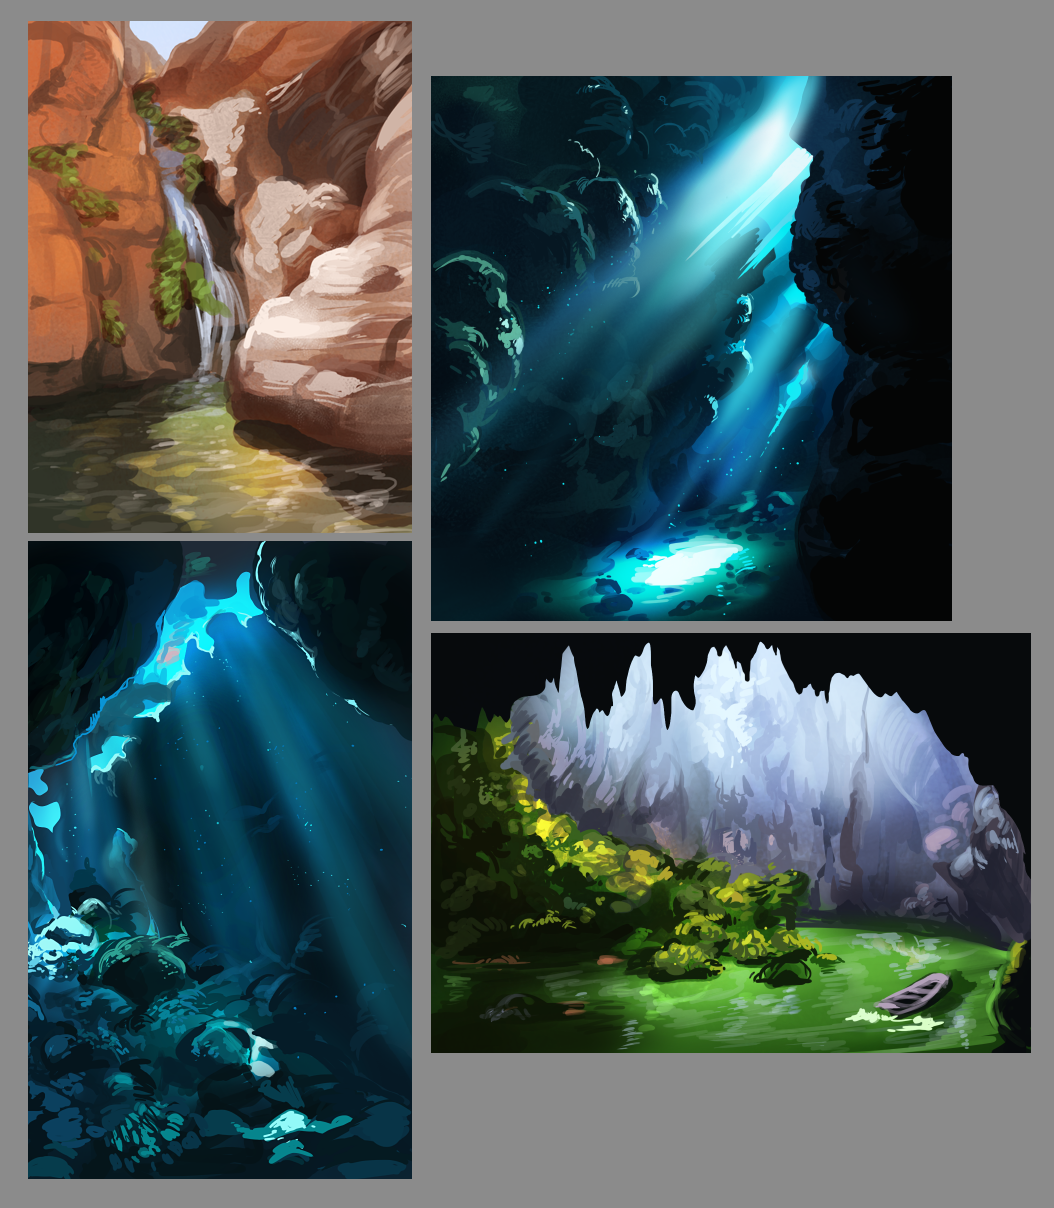 30 minute environmental studies from photograph.